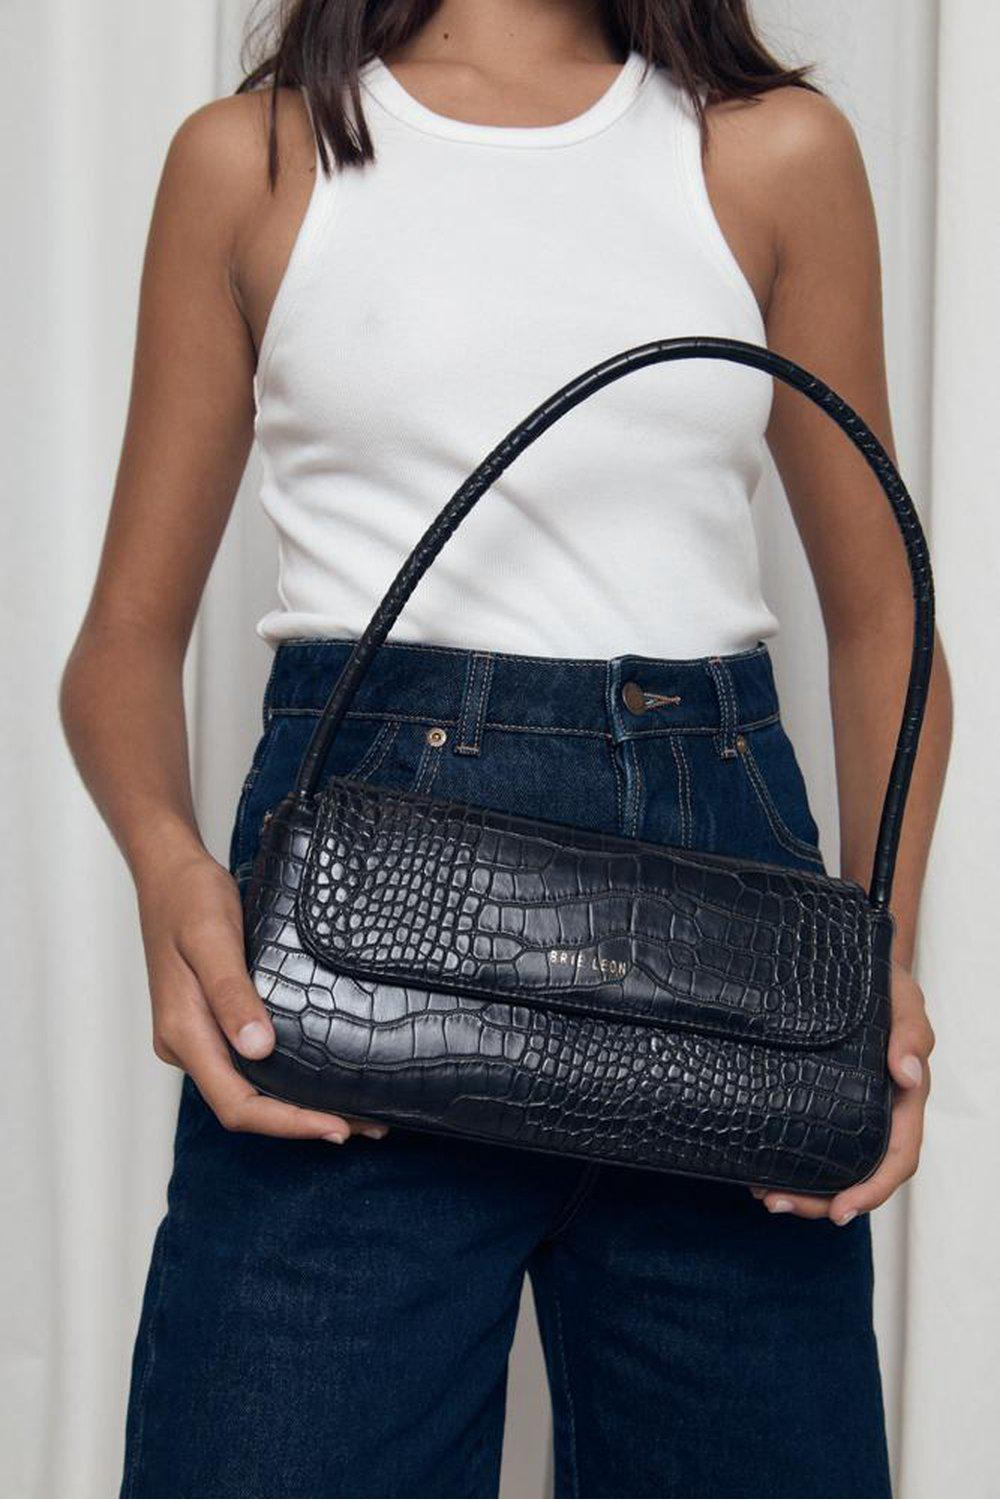 The Camille Bag / Black Matte Croc | Brie Leon | Mad About The Boy